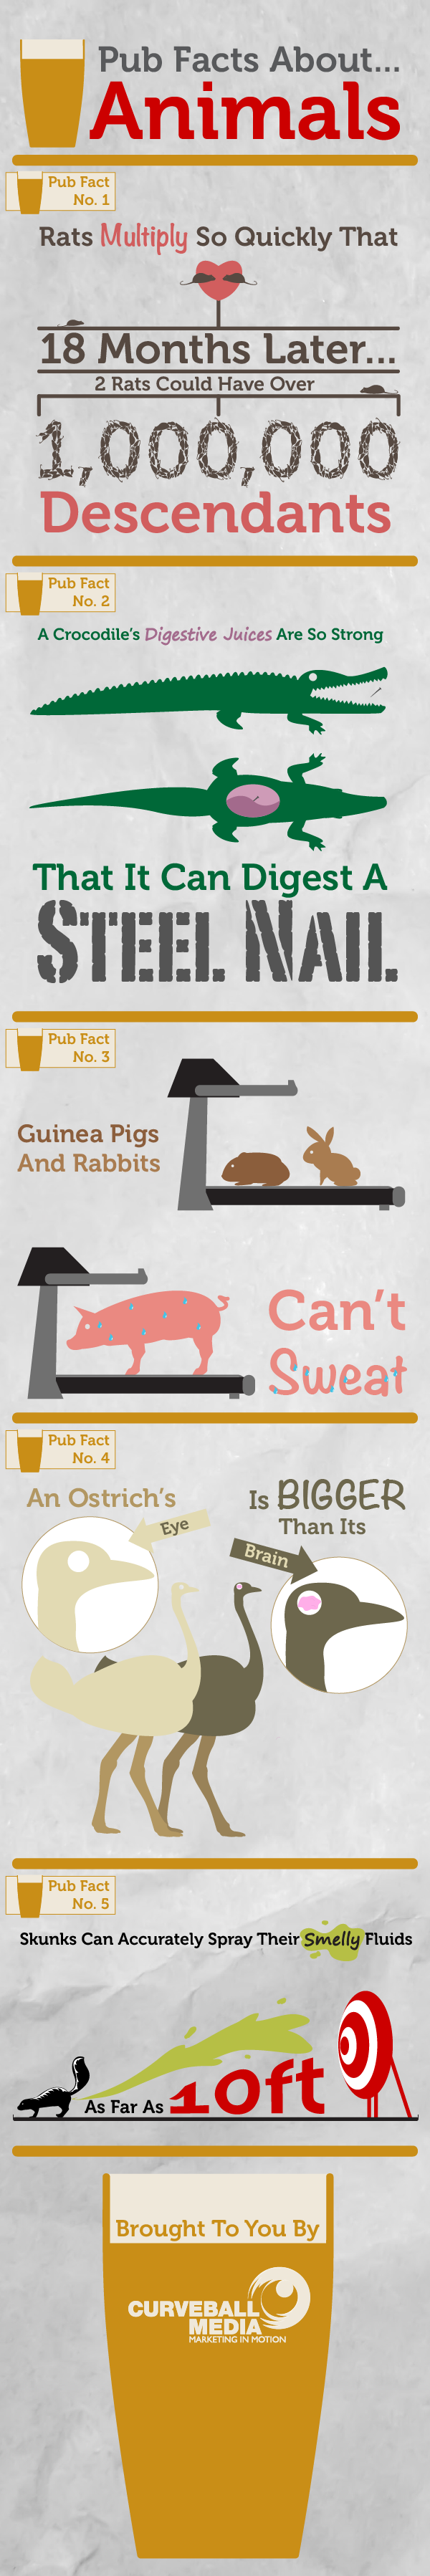 5 Pub Facts About Animals